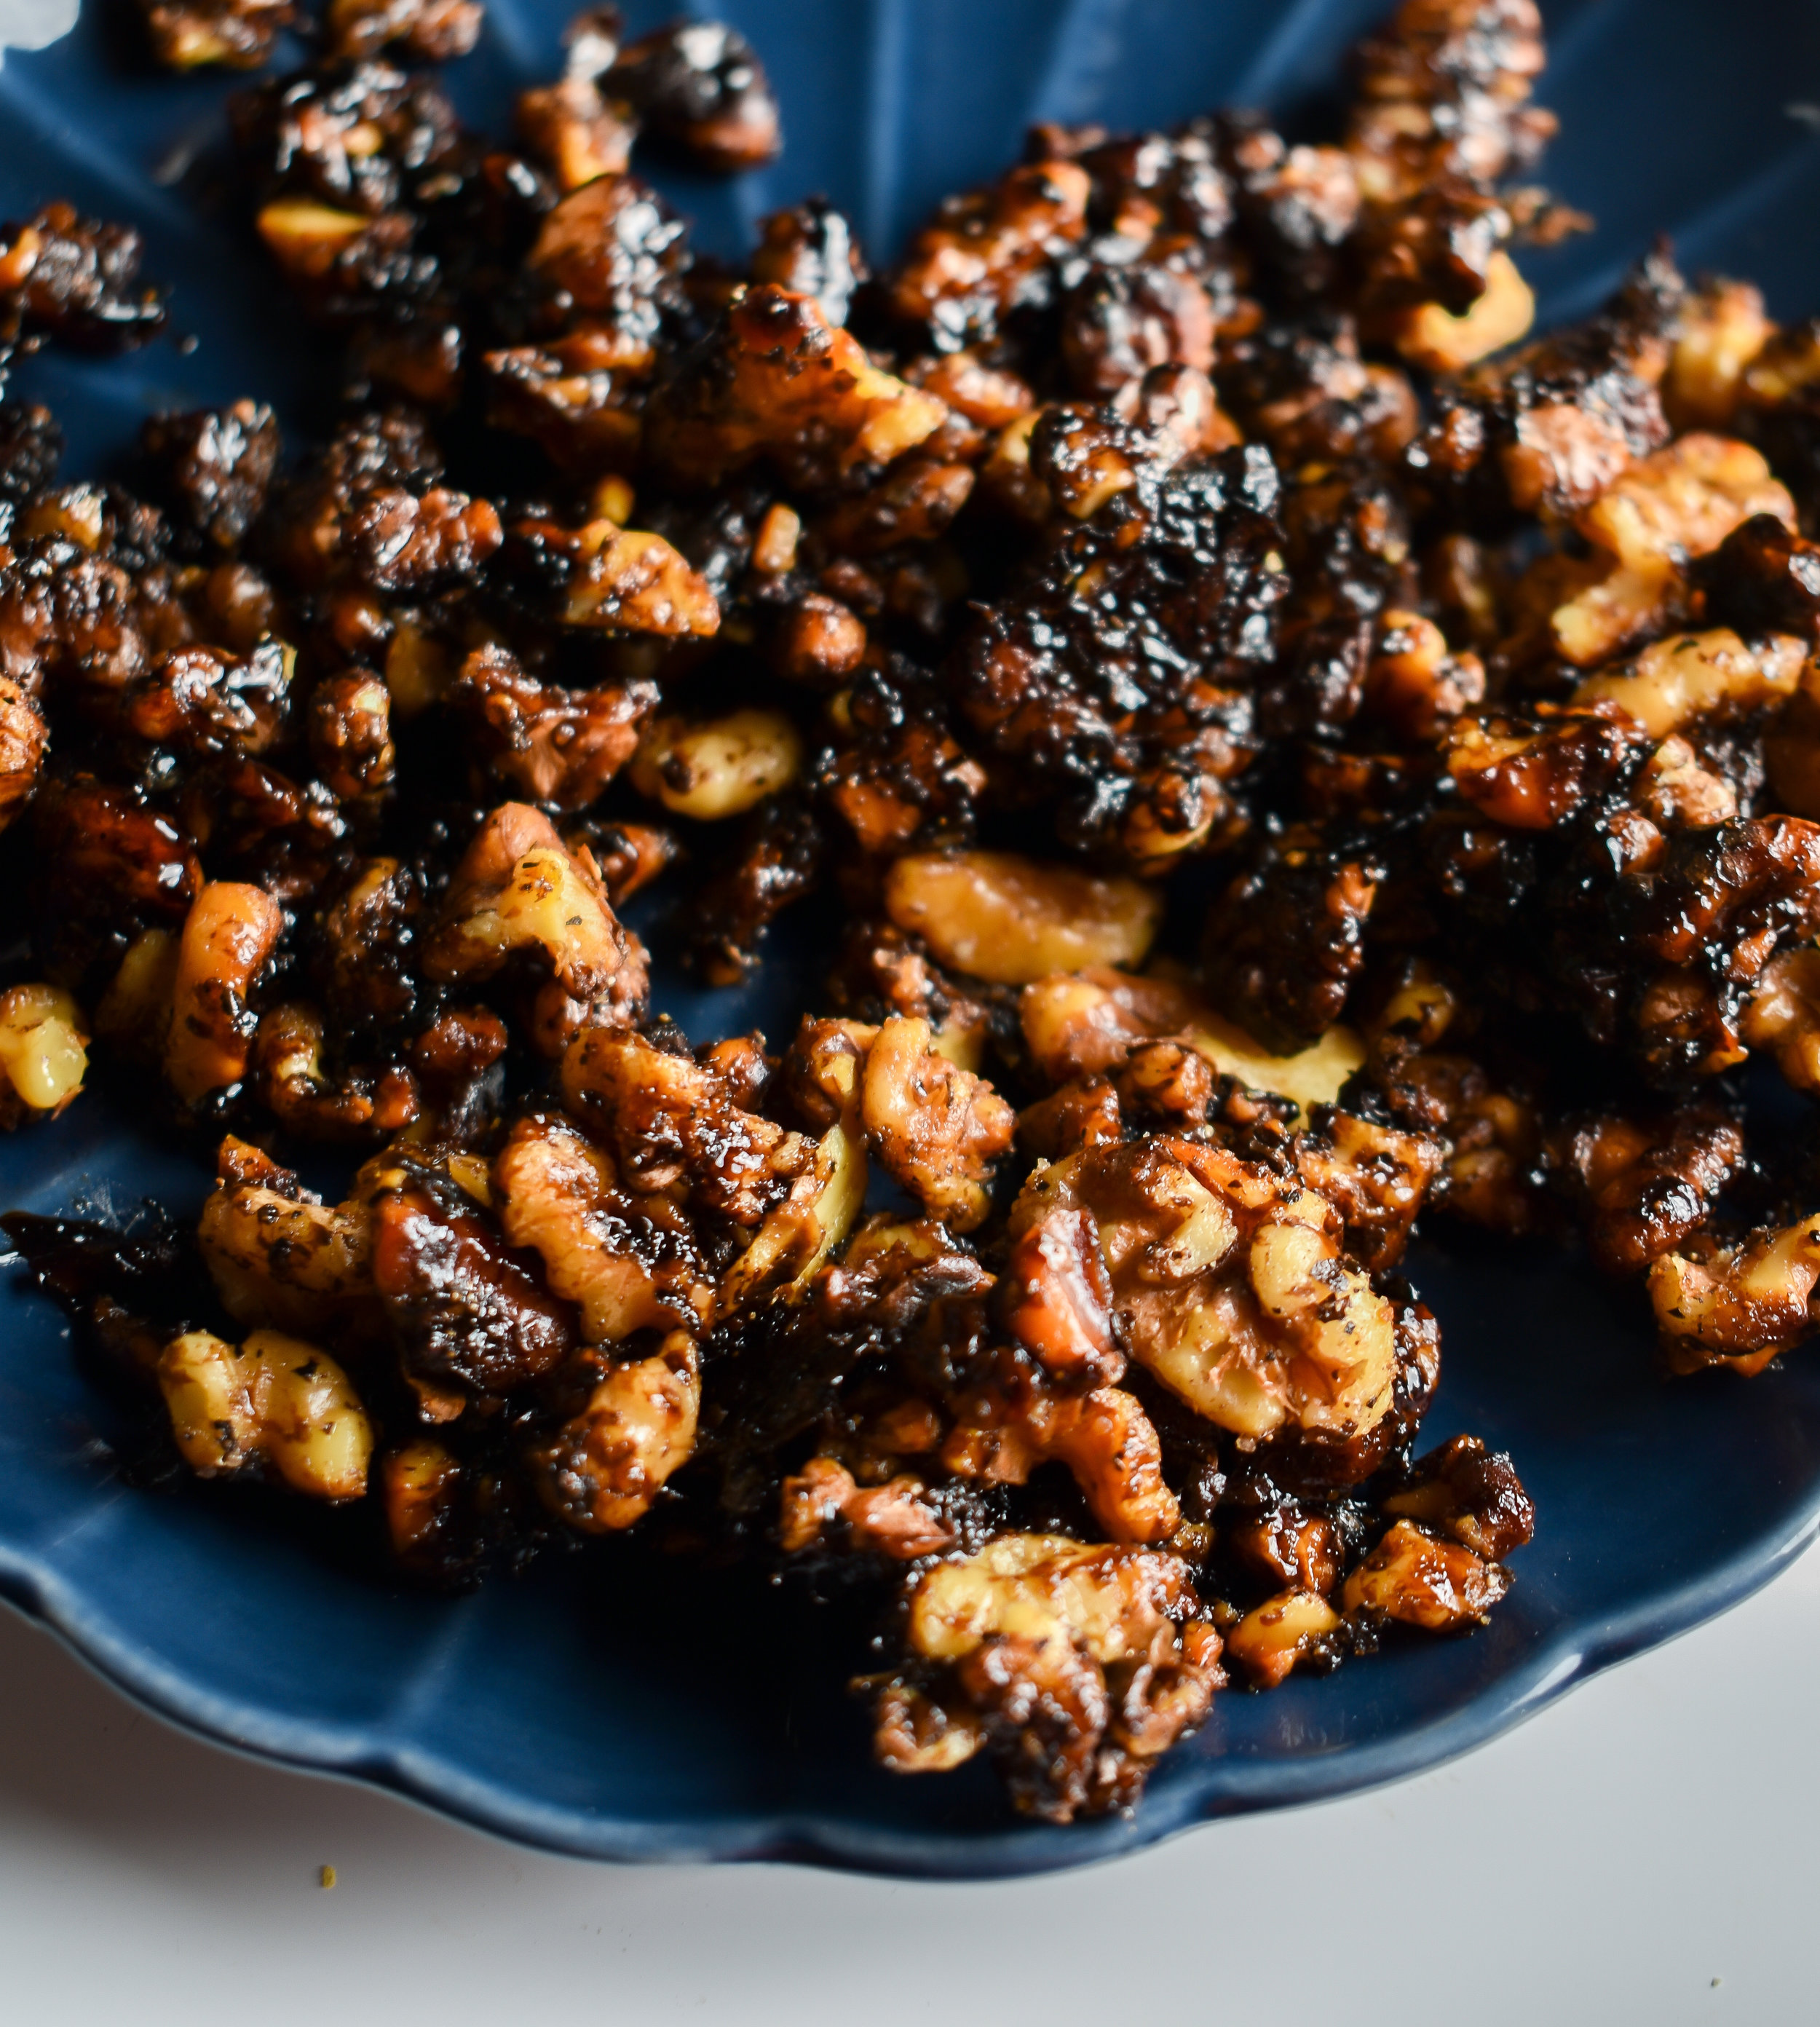 3. While the beets roast and pear cook, dice up the walnut and add to a dry medium pan. Toast for 6-8 minutes over medium low heat until it starts to become fragrant. Add butter and cook another 2-3 minutes then add balsamic glaze and salt and pepper. Take off heat and let sit. Set aside.